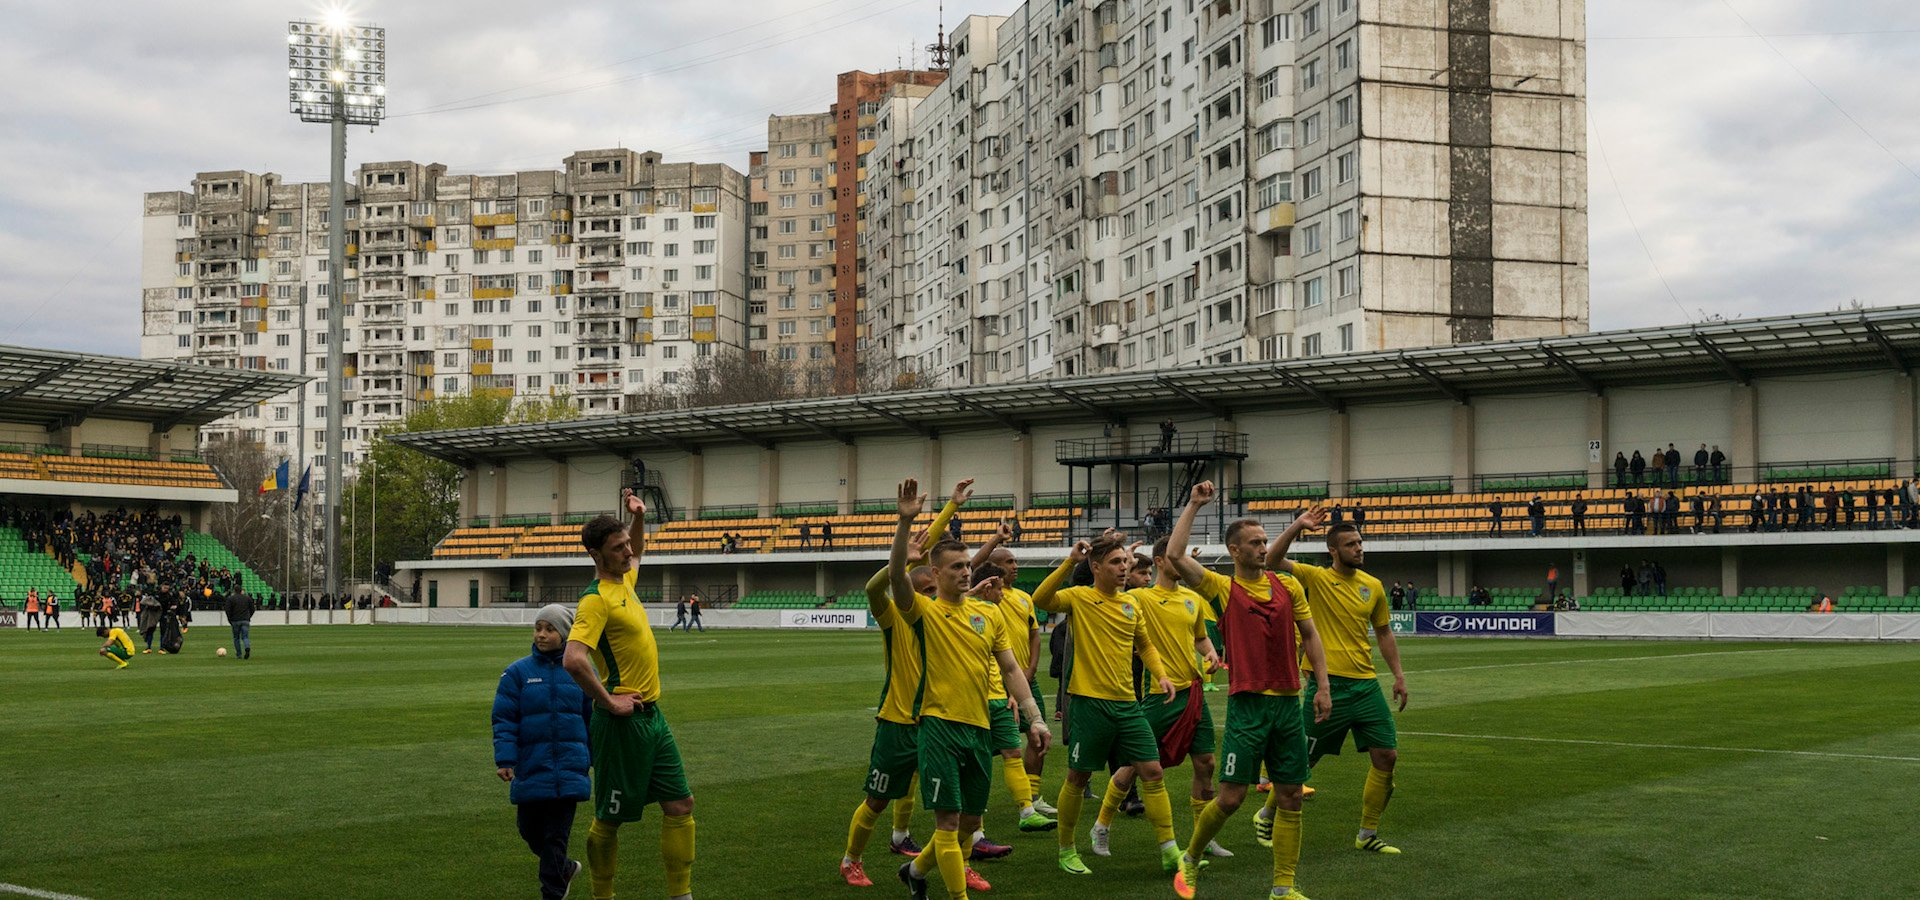 How football brought Moldova and Transnistria together, despite 27 years of frozen conflict